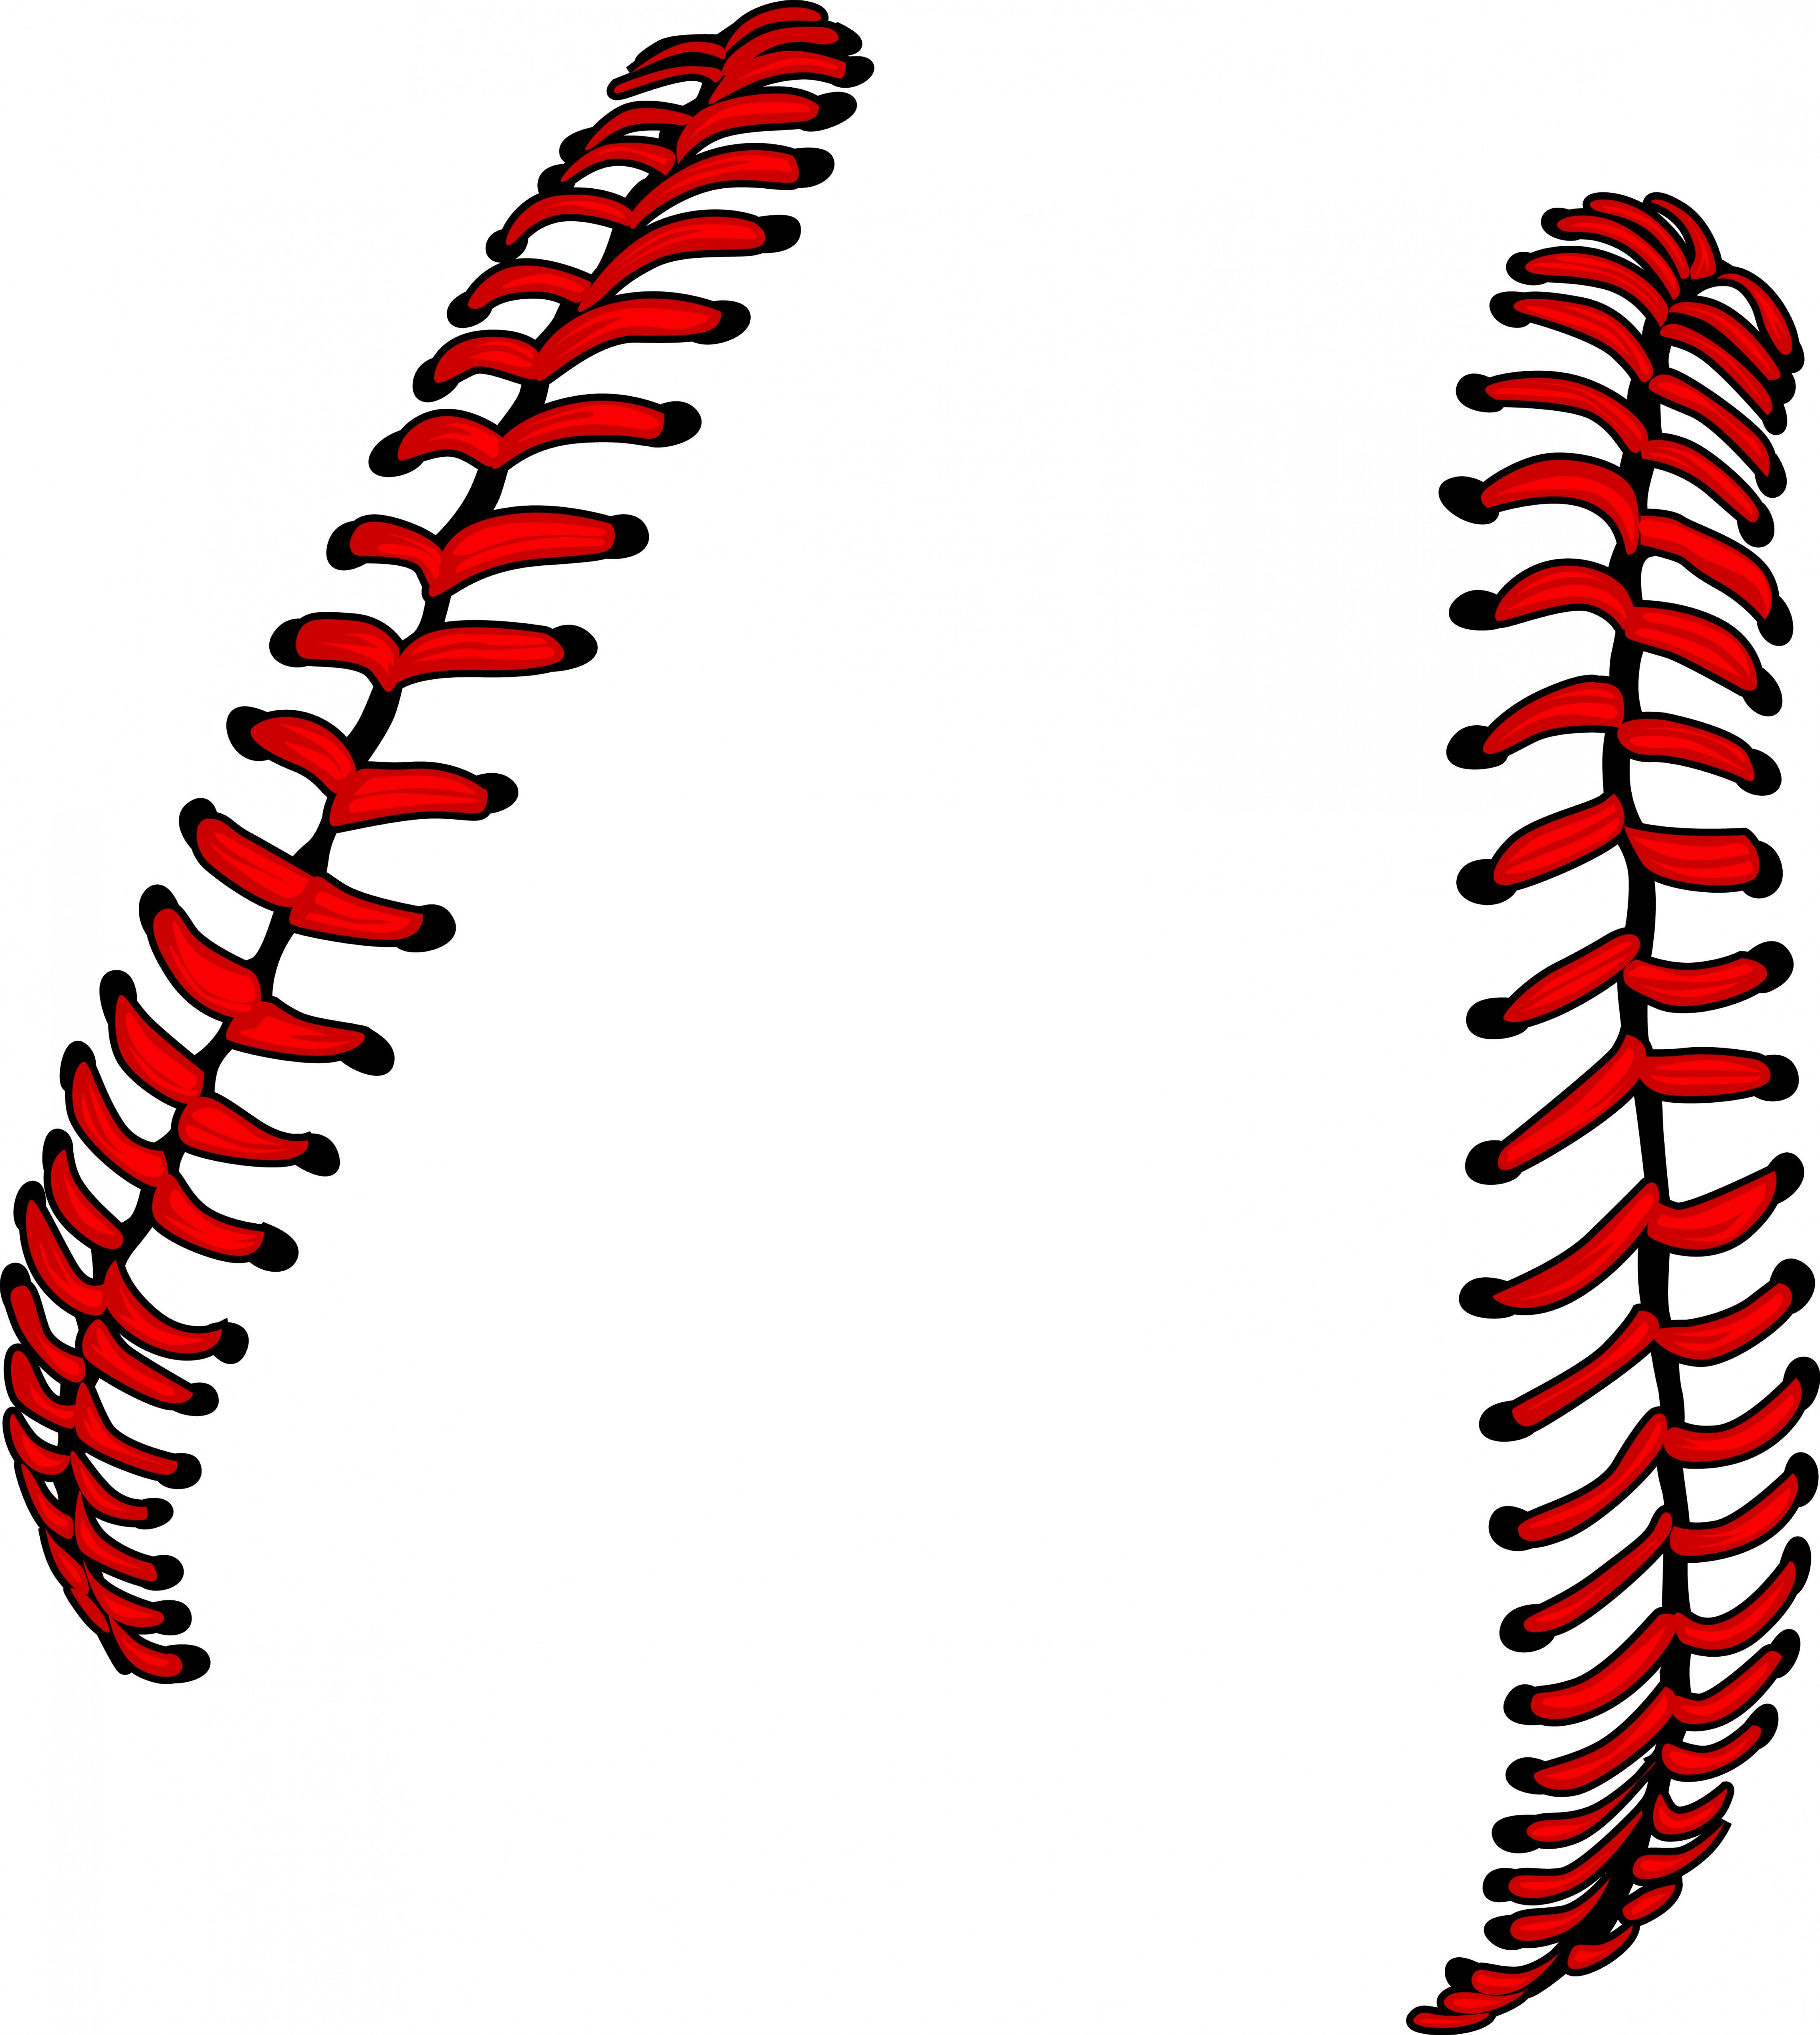 Laces Basball Vector: Baseball Laces Or Softball Laces Vector Image